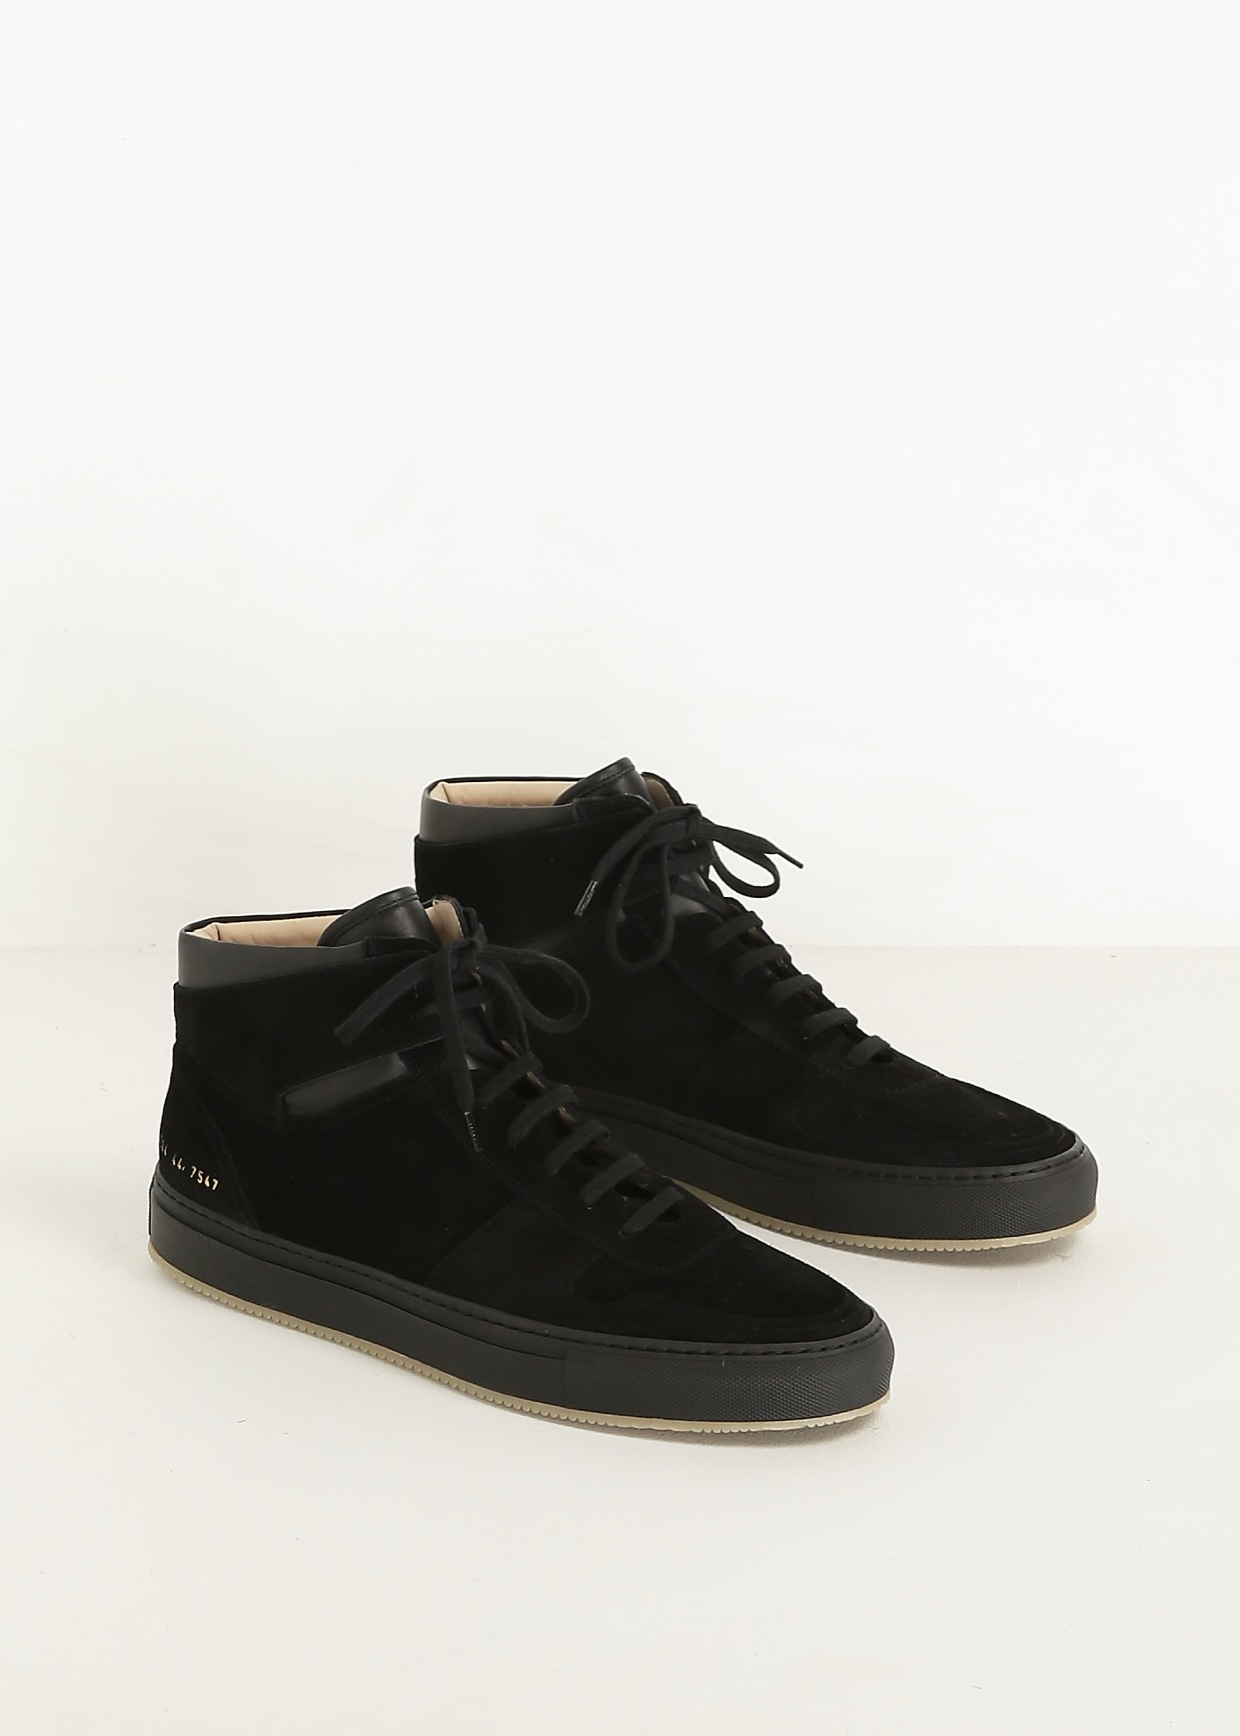 f476745db0c Lyst - Common Projects Black Bball High Suede Sneaker in Black for Men